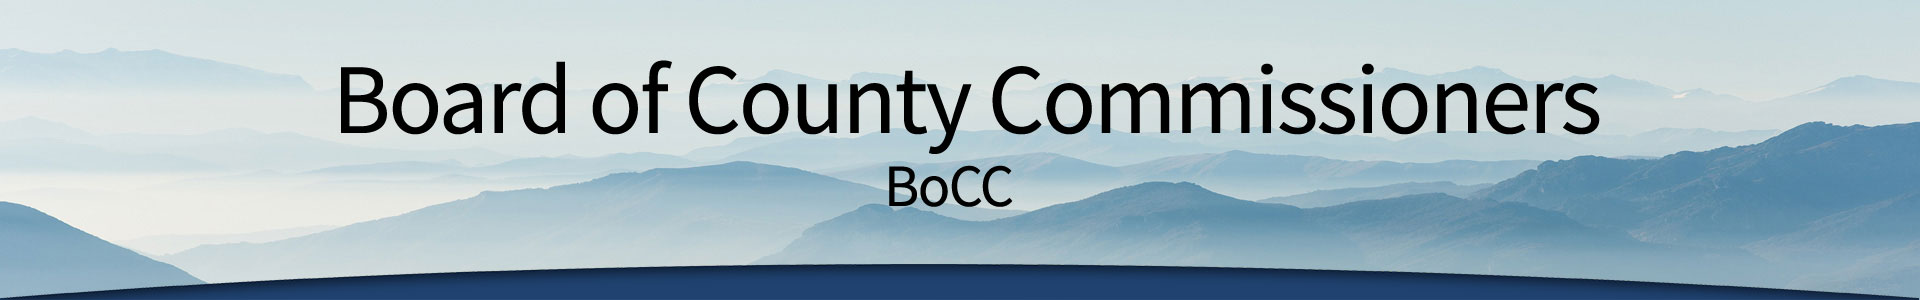 Board of County Commissioners header - Click for home